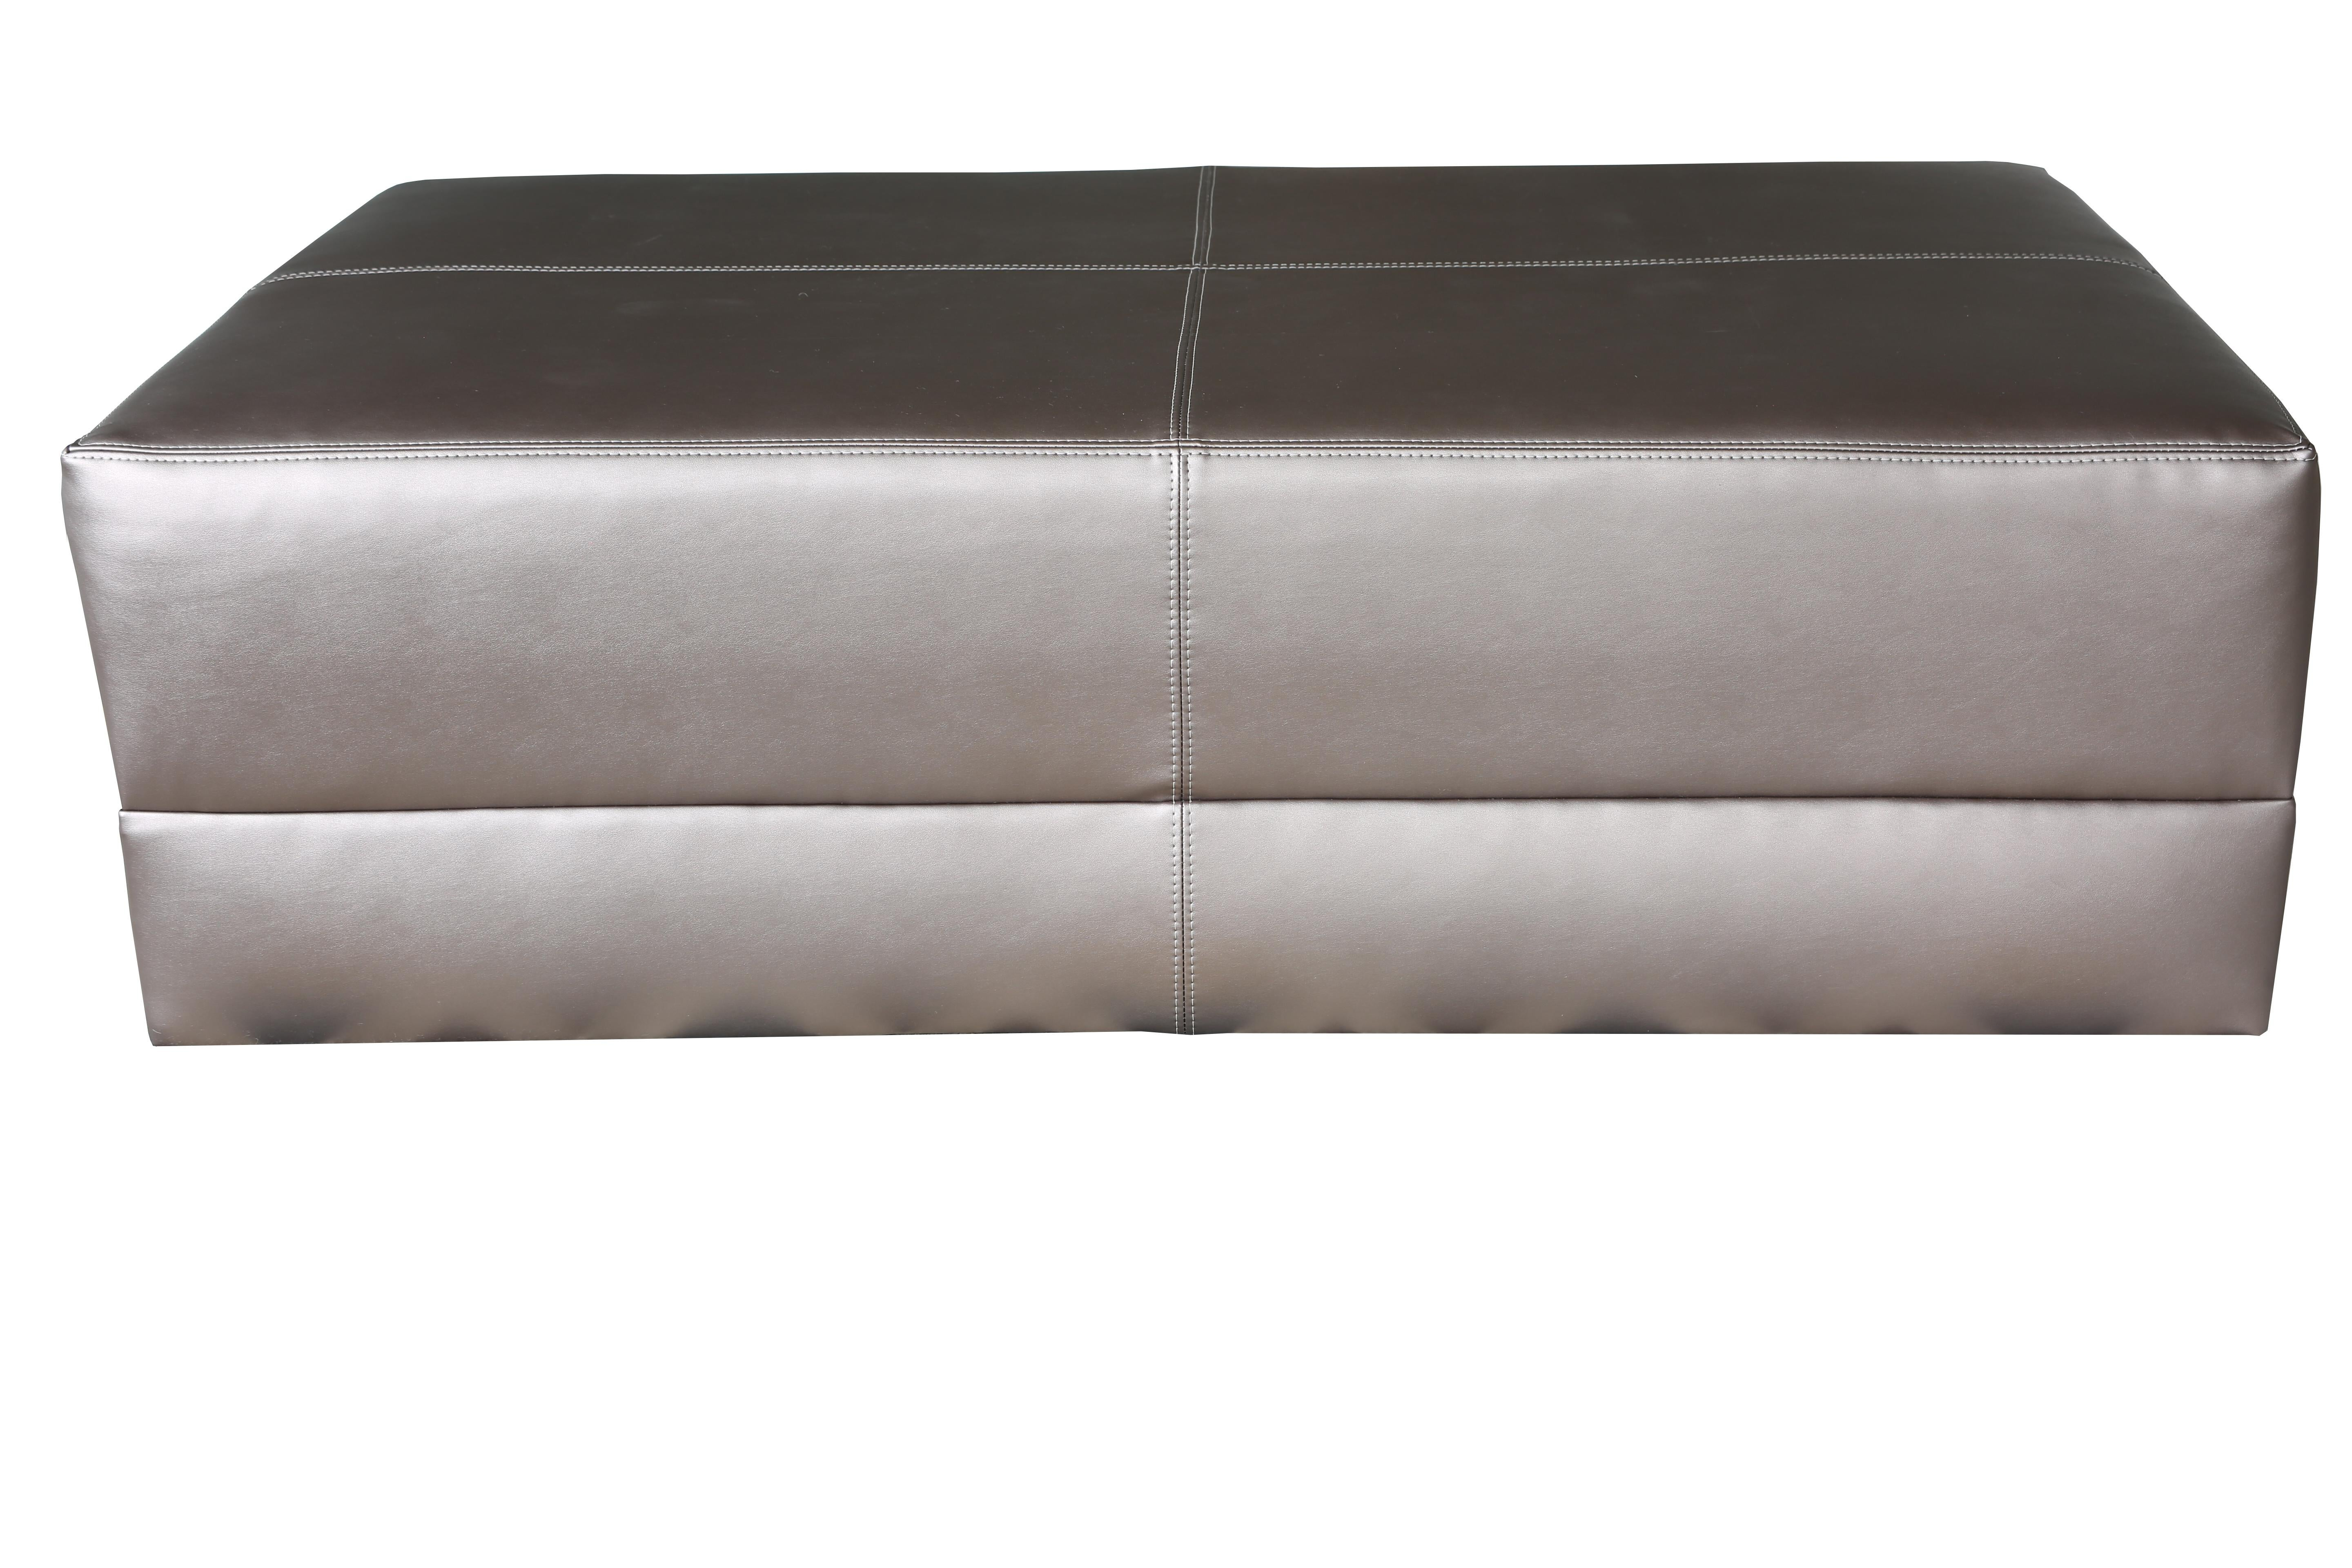 Upholstered Cocktail Coffee Table, Metallic Leatherette, Ottoman, Faux  Leather In New Condition For